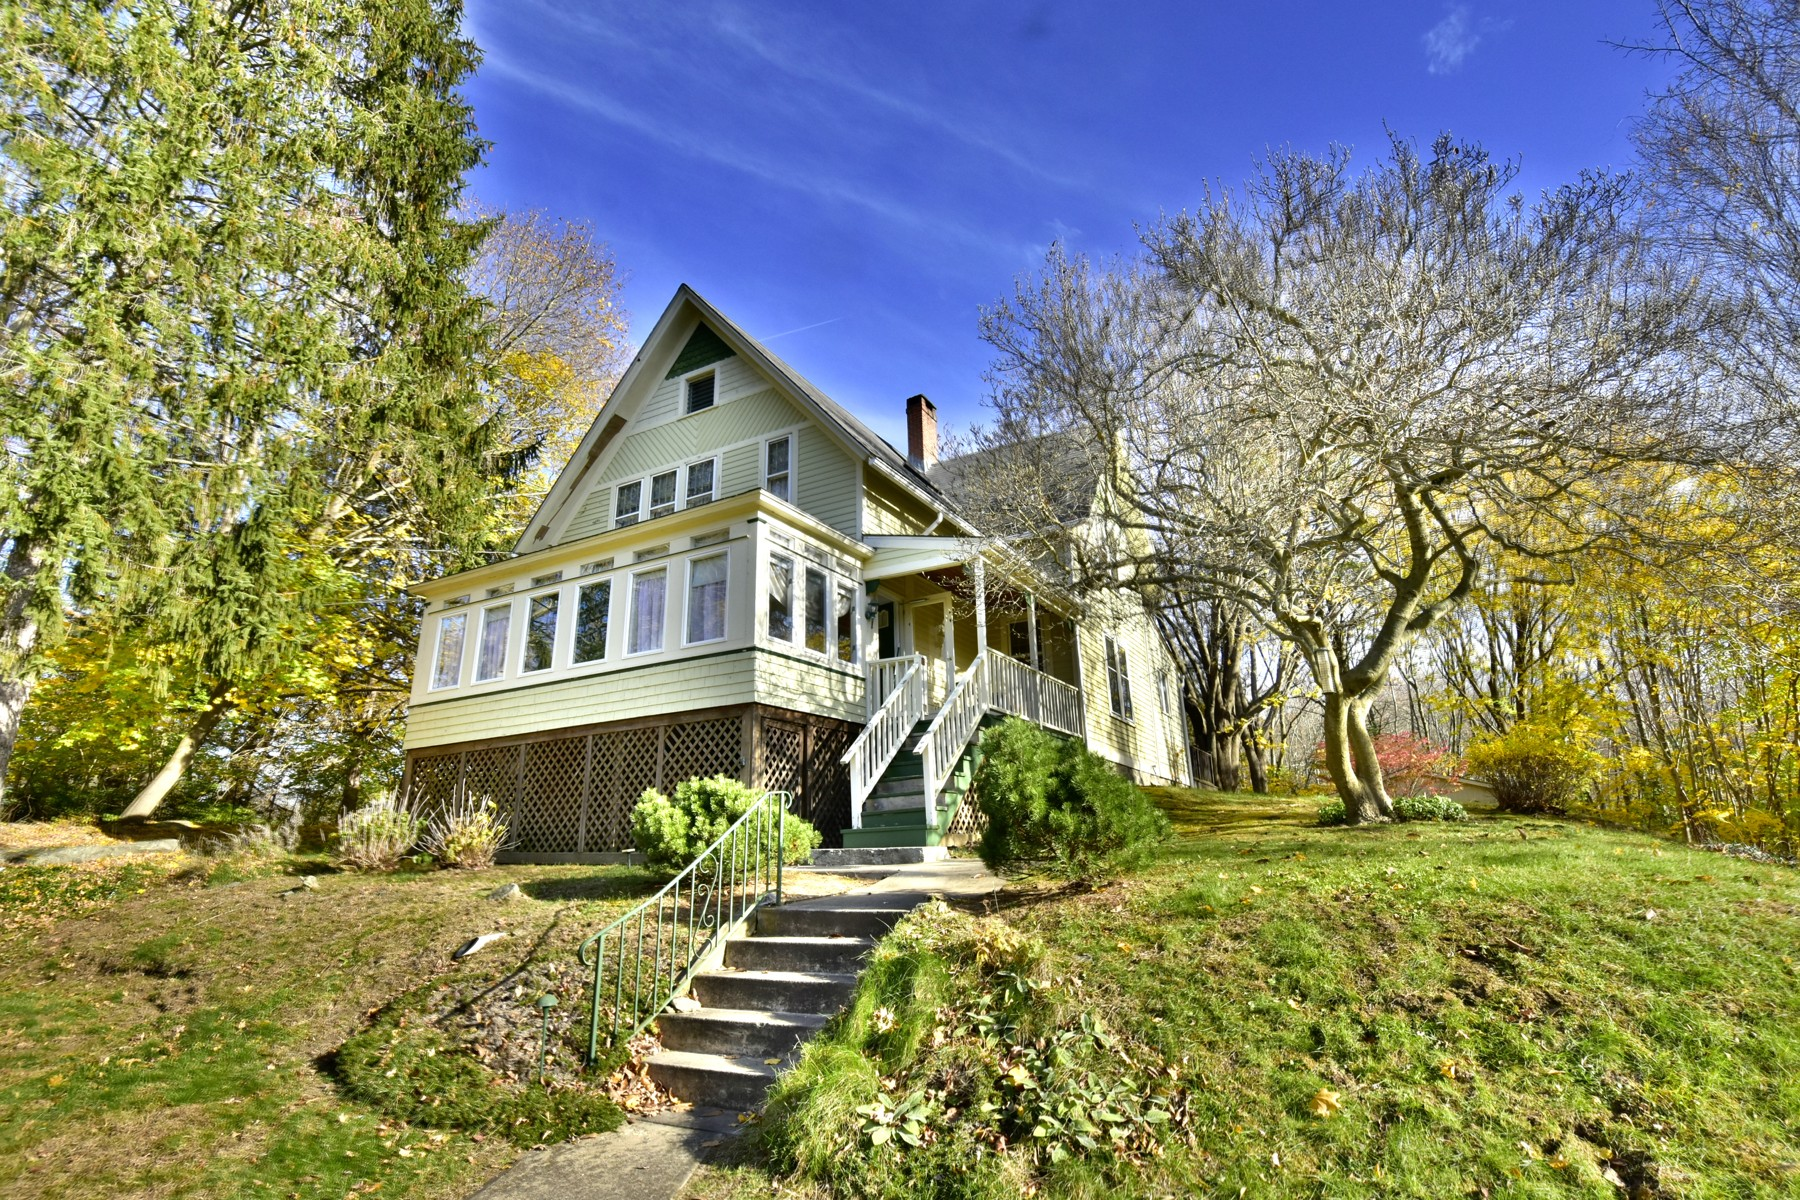 Single Family Home for Active at Charming Victorian in Heart of Deep River Village 58 River St Deep River, 06417 United States